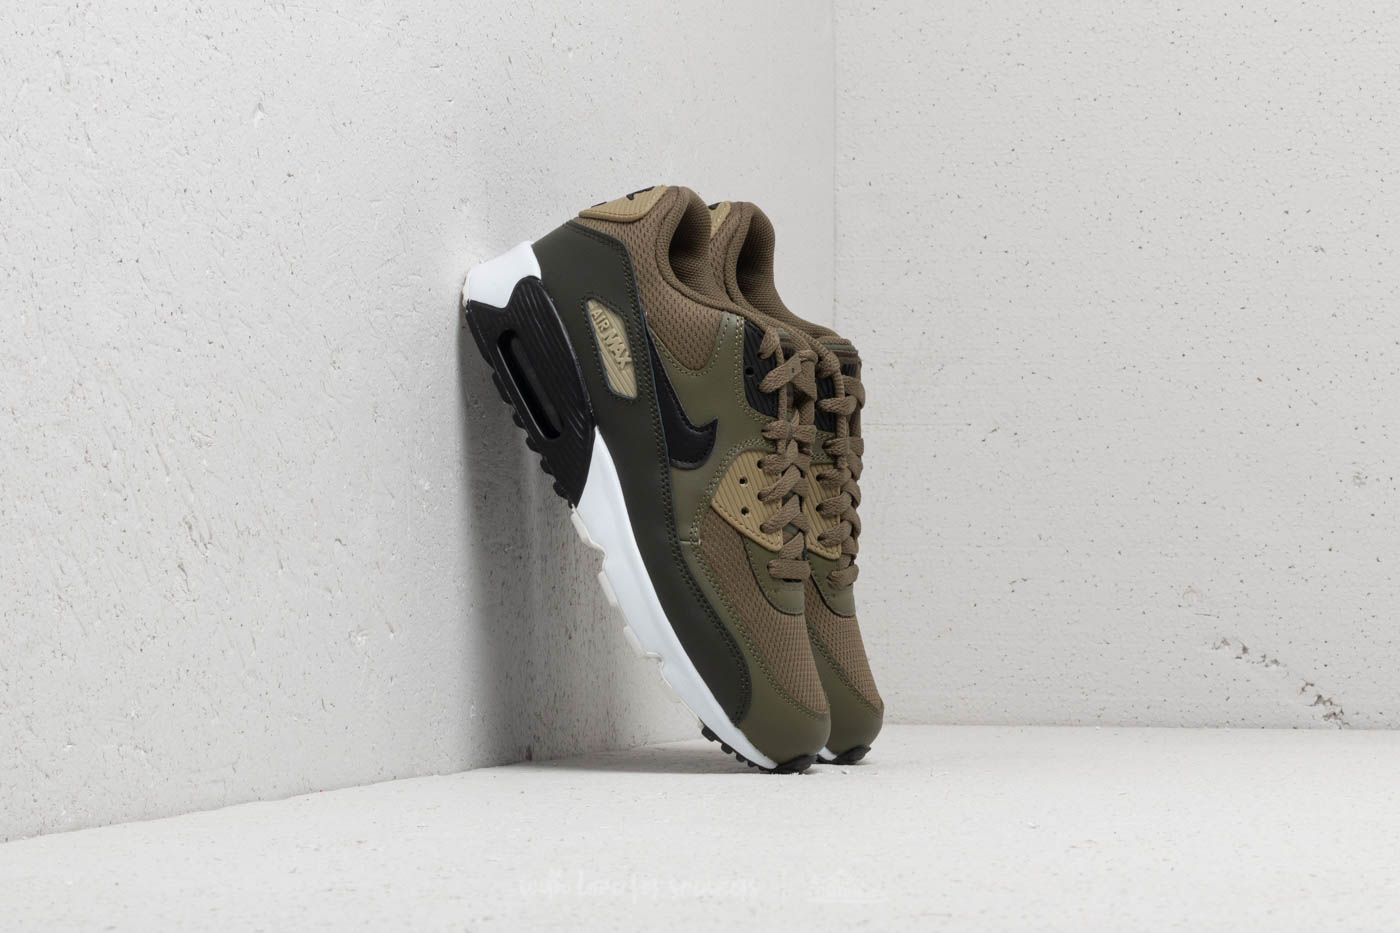 d02a8a2e63ba Nike Air Max 90 Mesh (GS) Medium Olive  Black-Sequoia